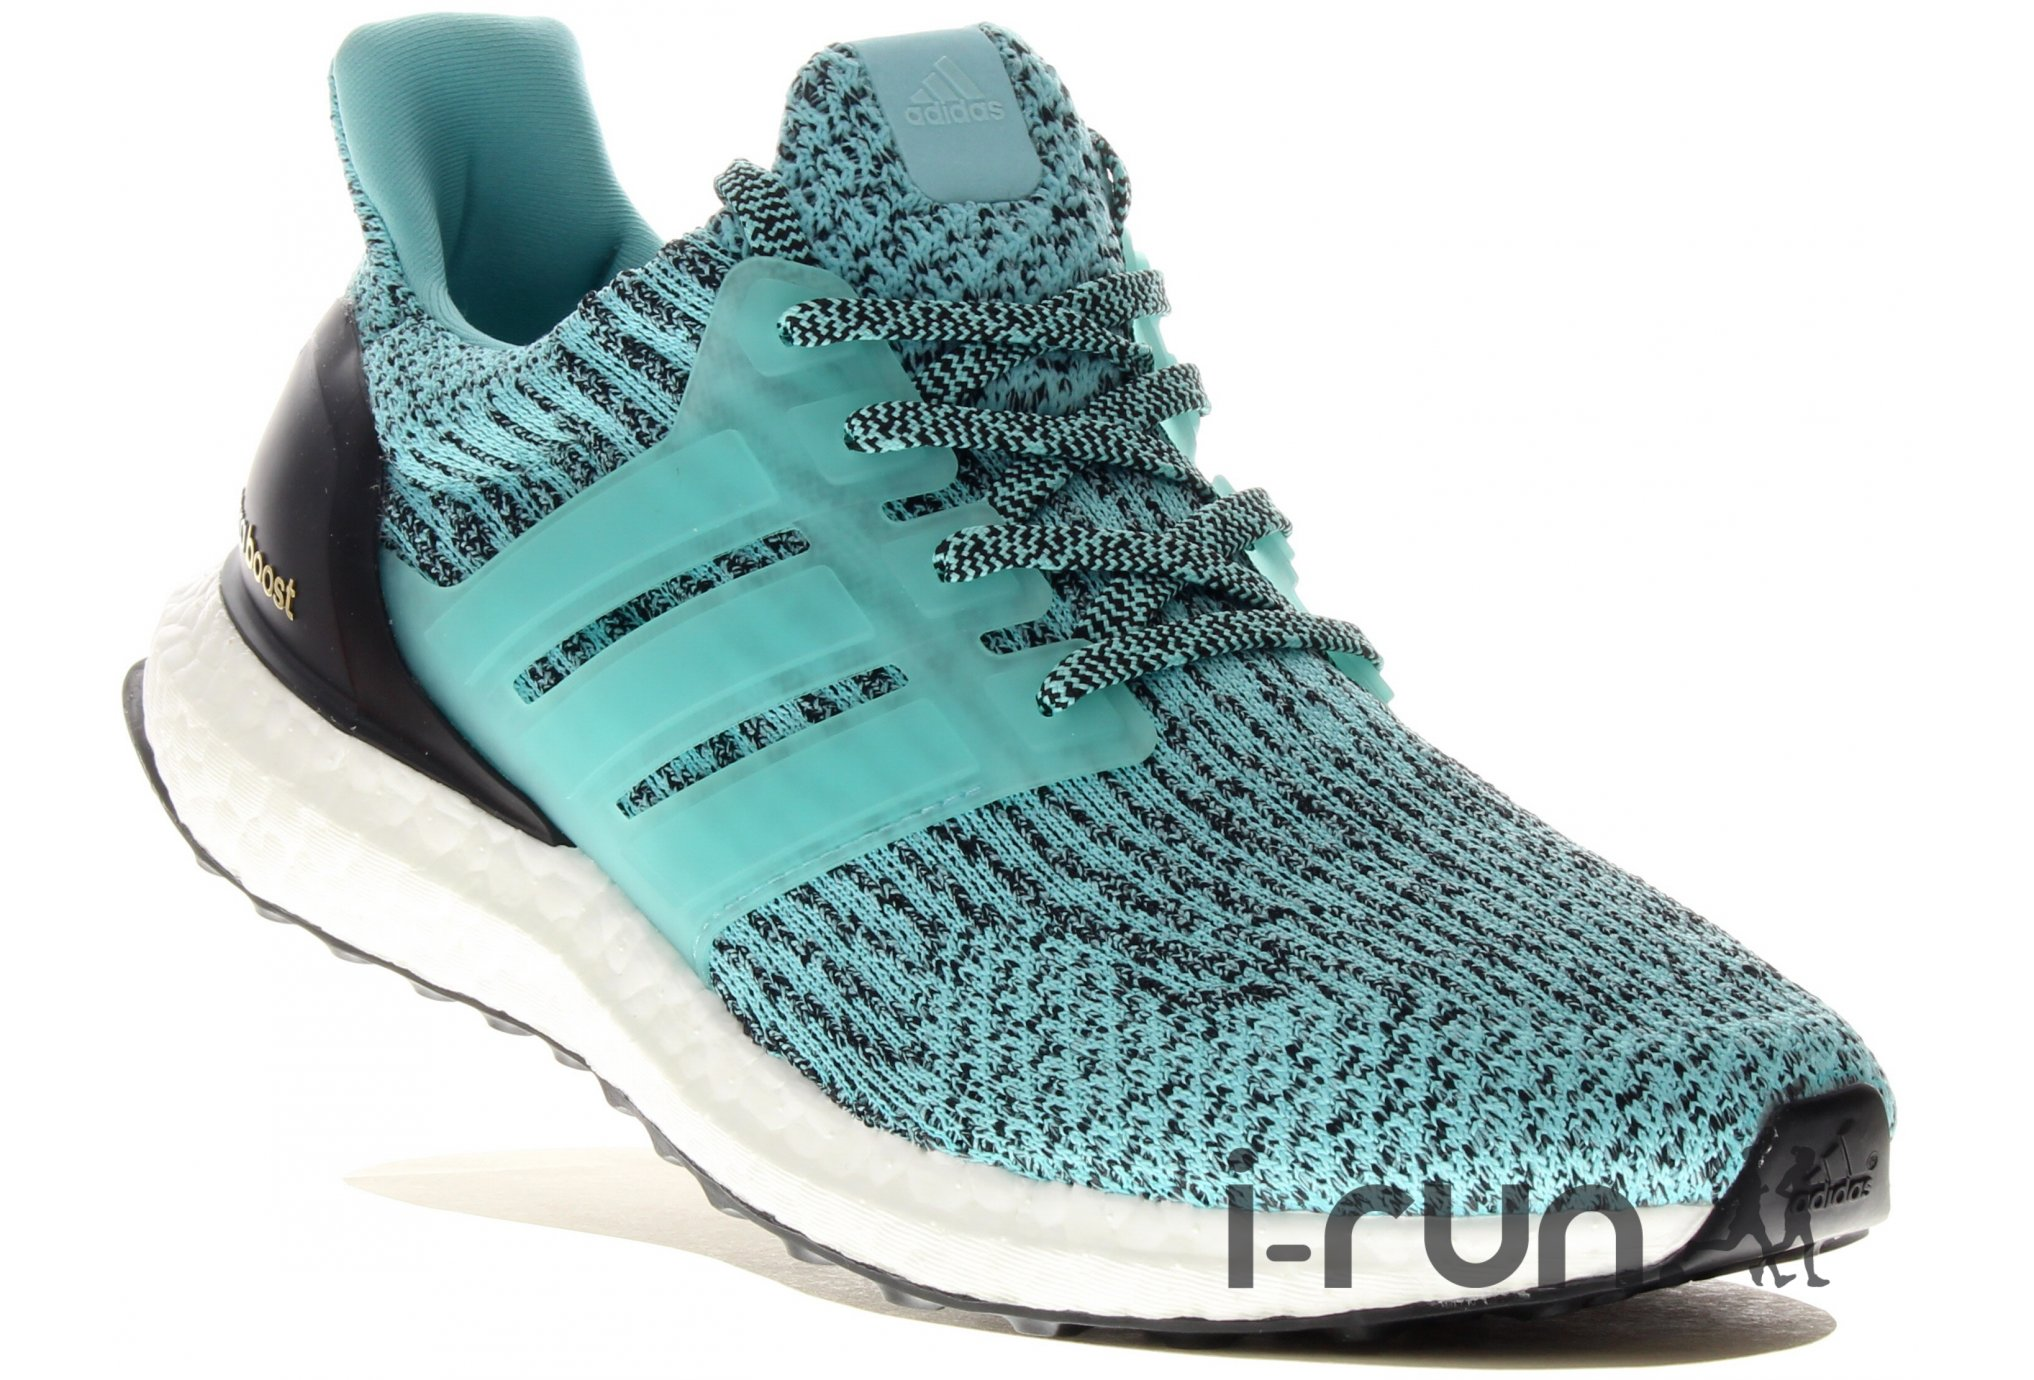 mont 39 run adidas ultra boost w chaussures running femme. Black Bedroom Furniture Sets. Home Design Ideas